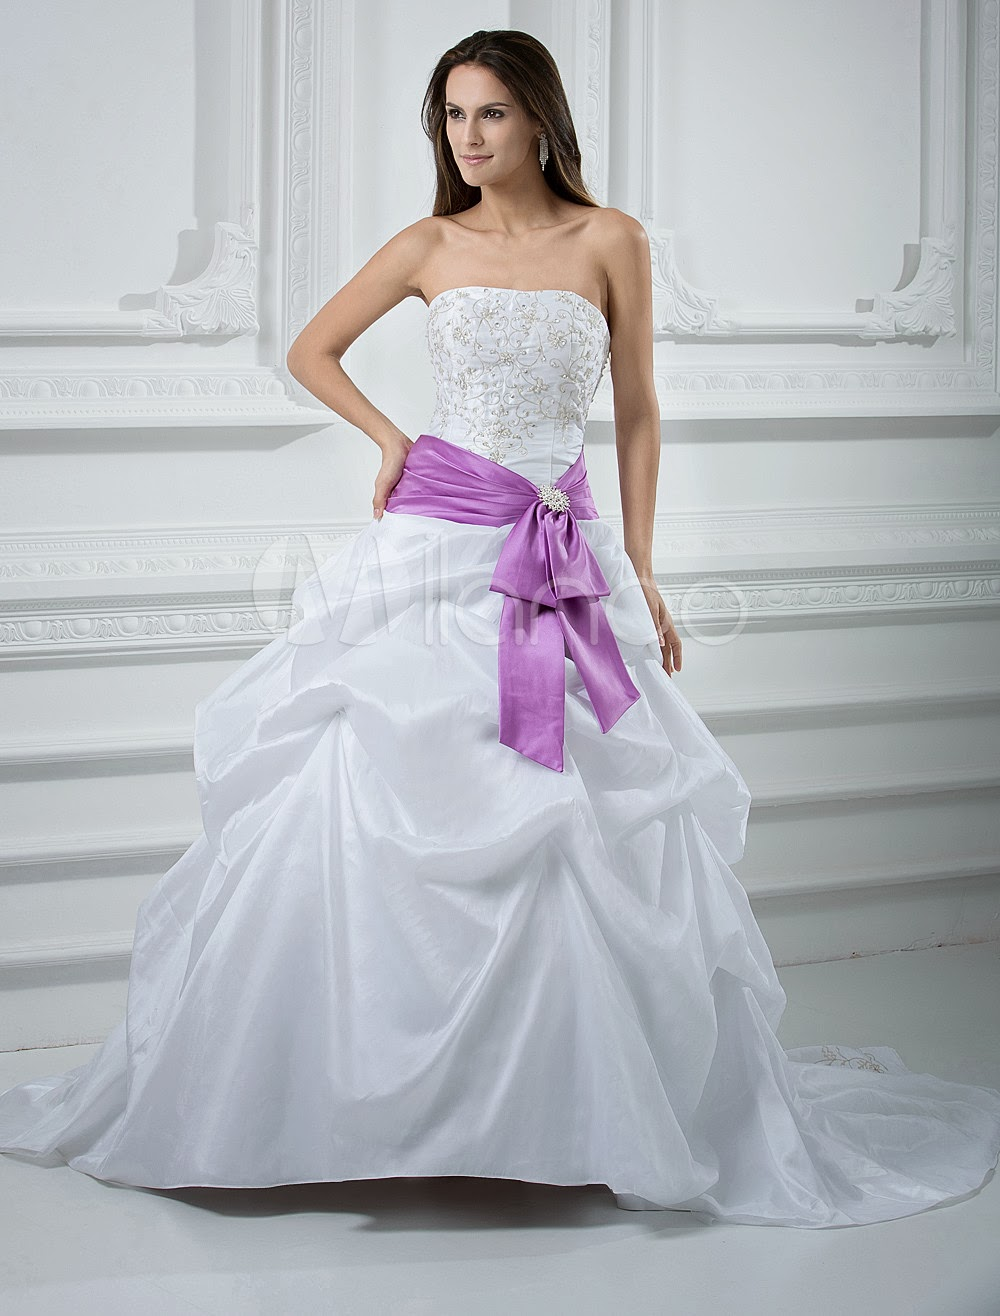 China Wholesale Dresses - Fashion Ball Gown Strapless Beading Taffeta Wedding Dress With Sash